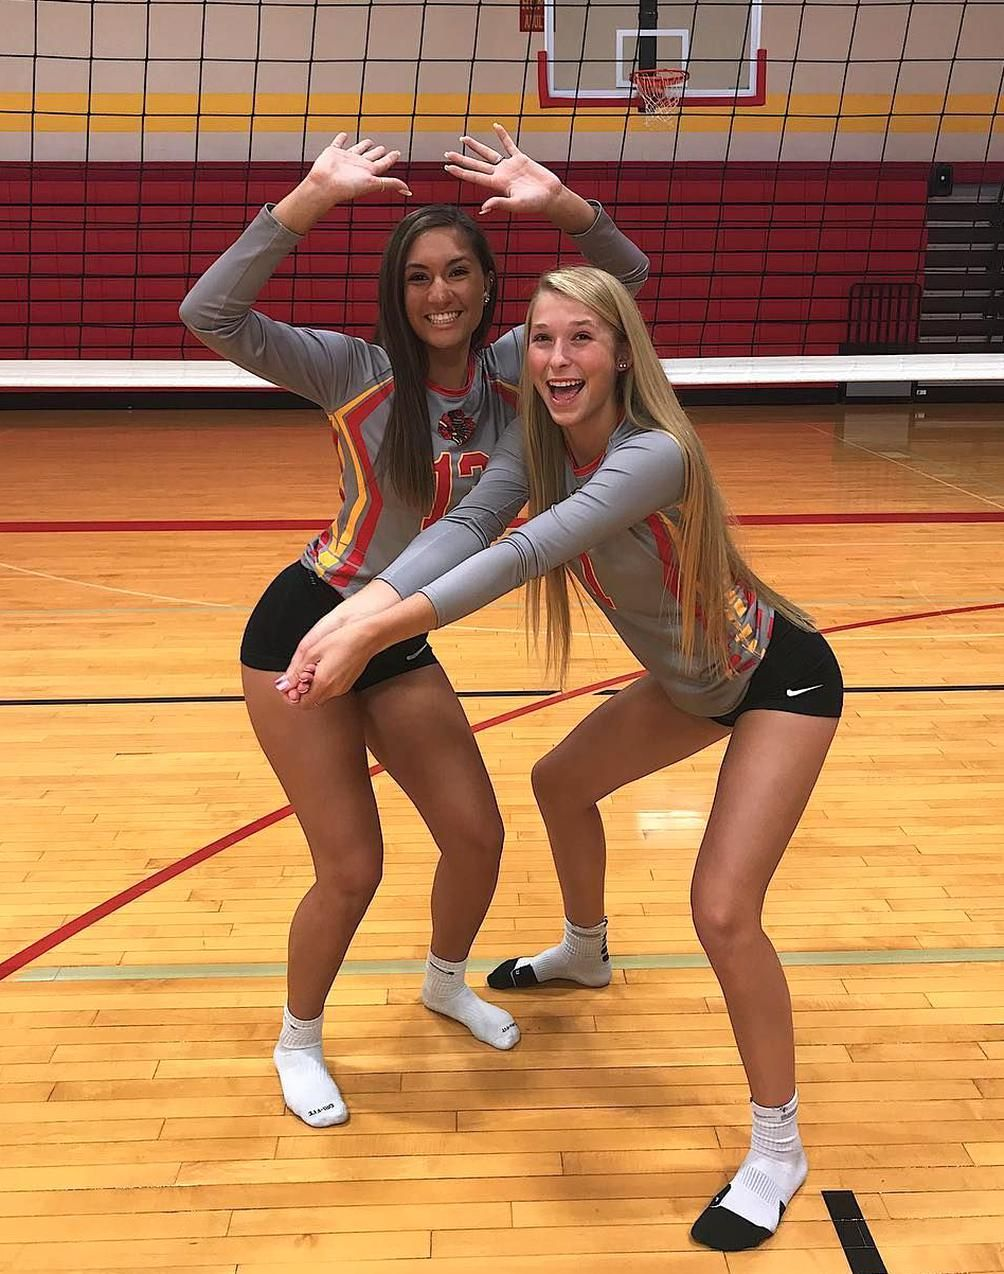 Kayba Laube Auf Instagram Gameday Home E Watch Us Kill It In 2020 Women Volleyball Volleyball Outfits Female Volleyball Players